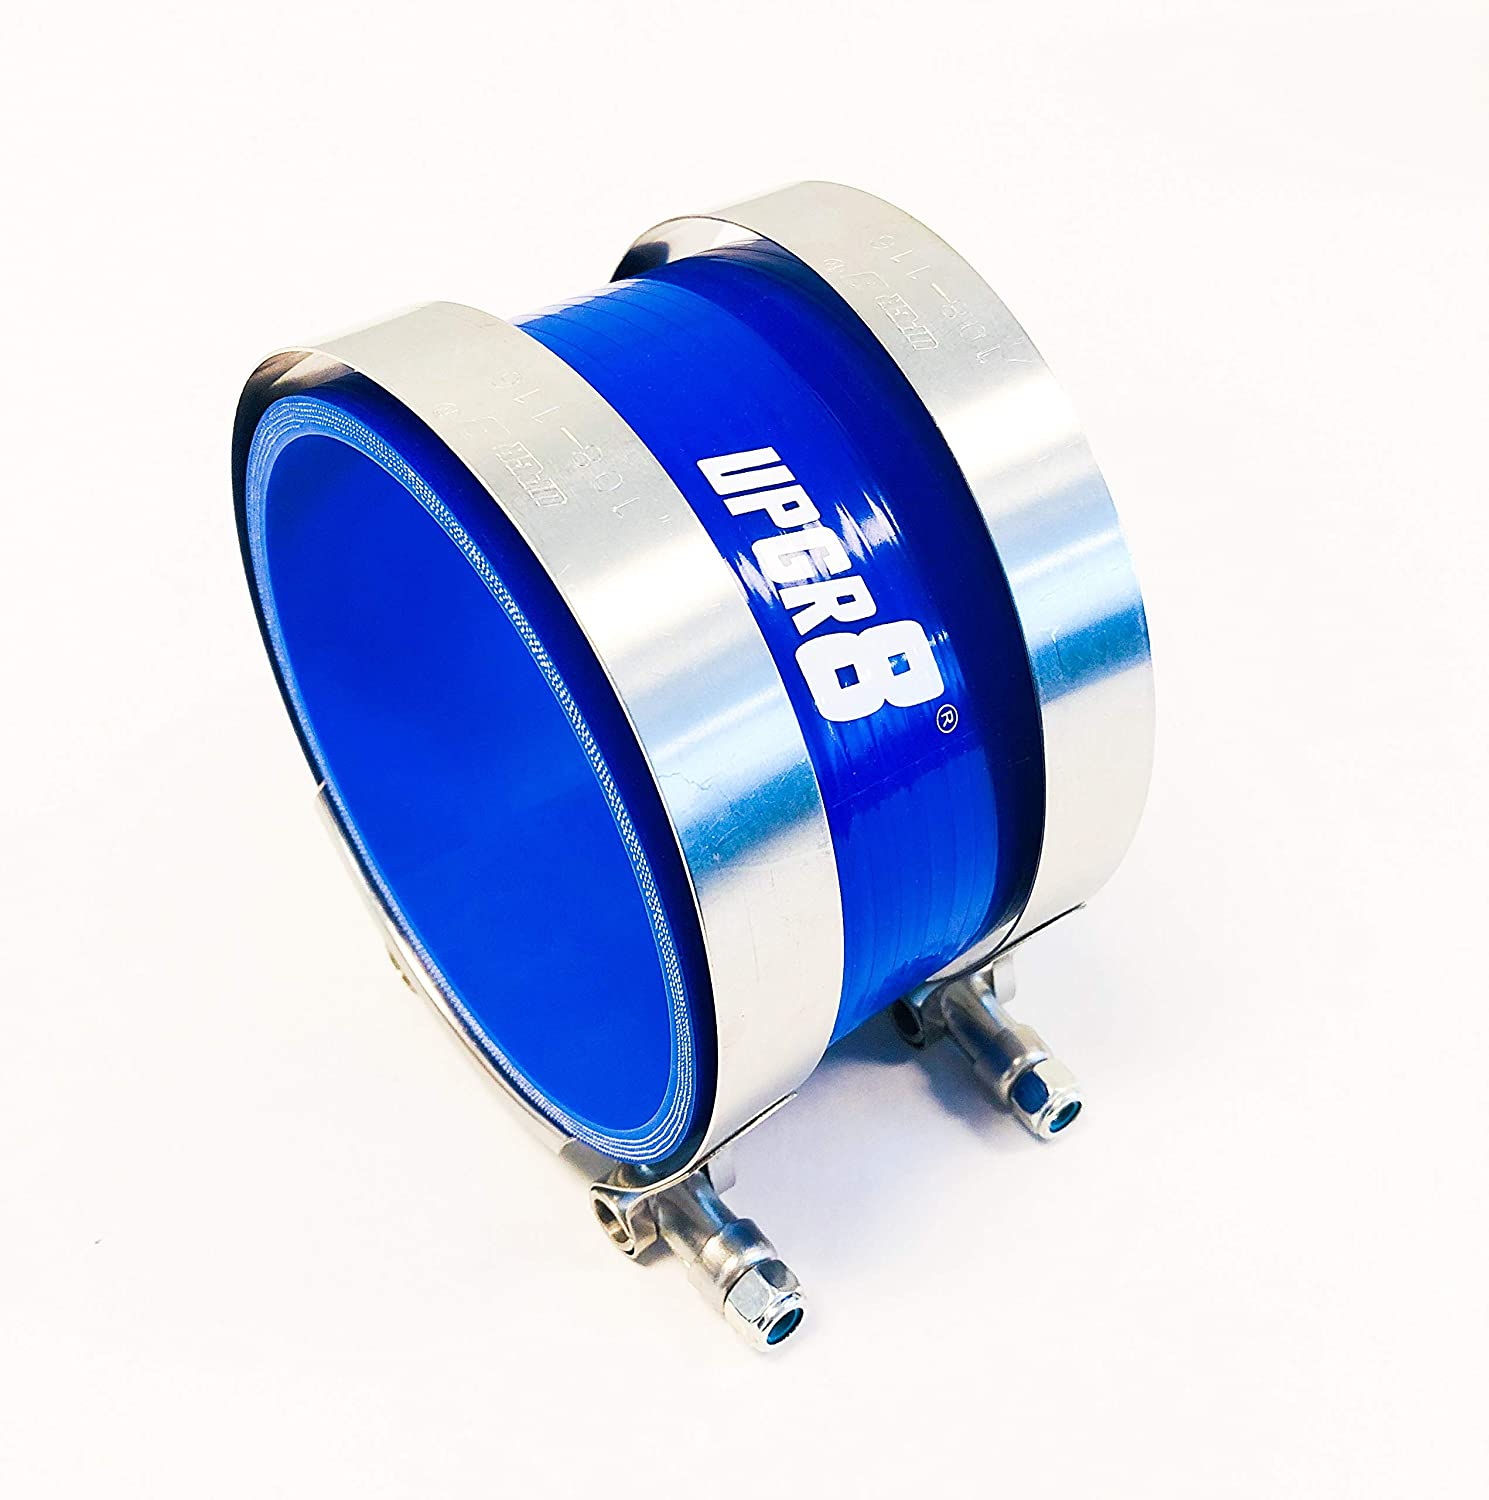 T-Bolt Clamp Upgr8 Universal 4-Ply High Performance 2.75 Straight Coupler Silicone Hose 70mm 2.75 Blue